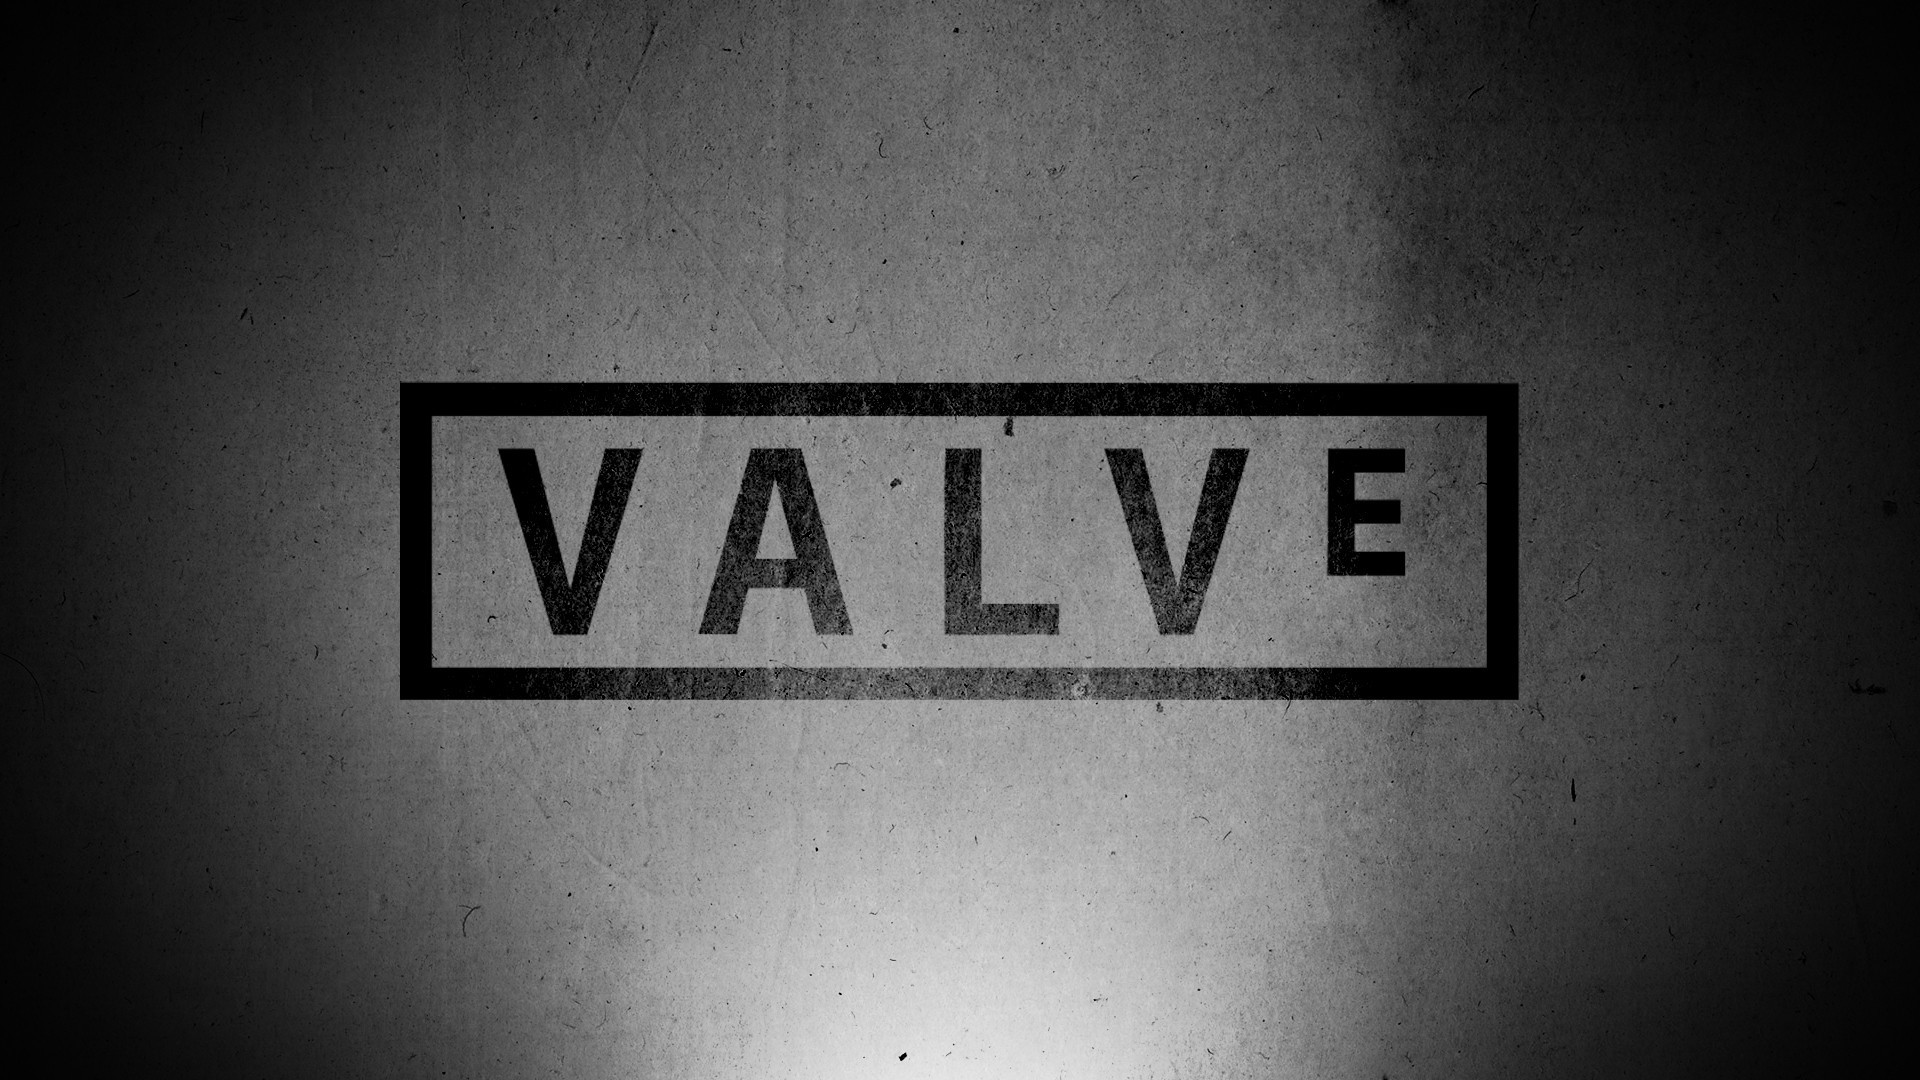 video games valve corporation HD Wallpaper